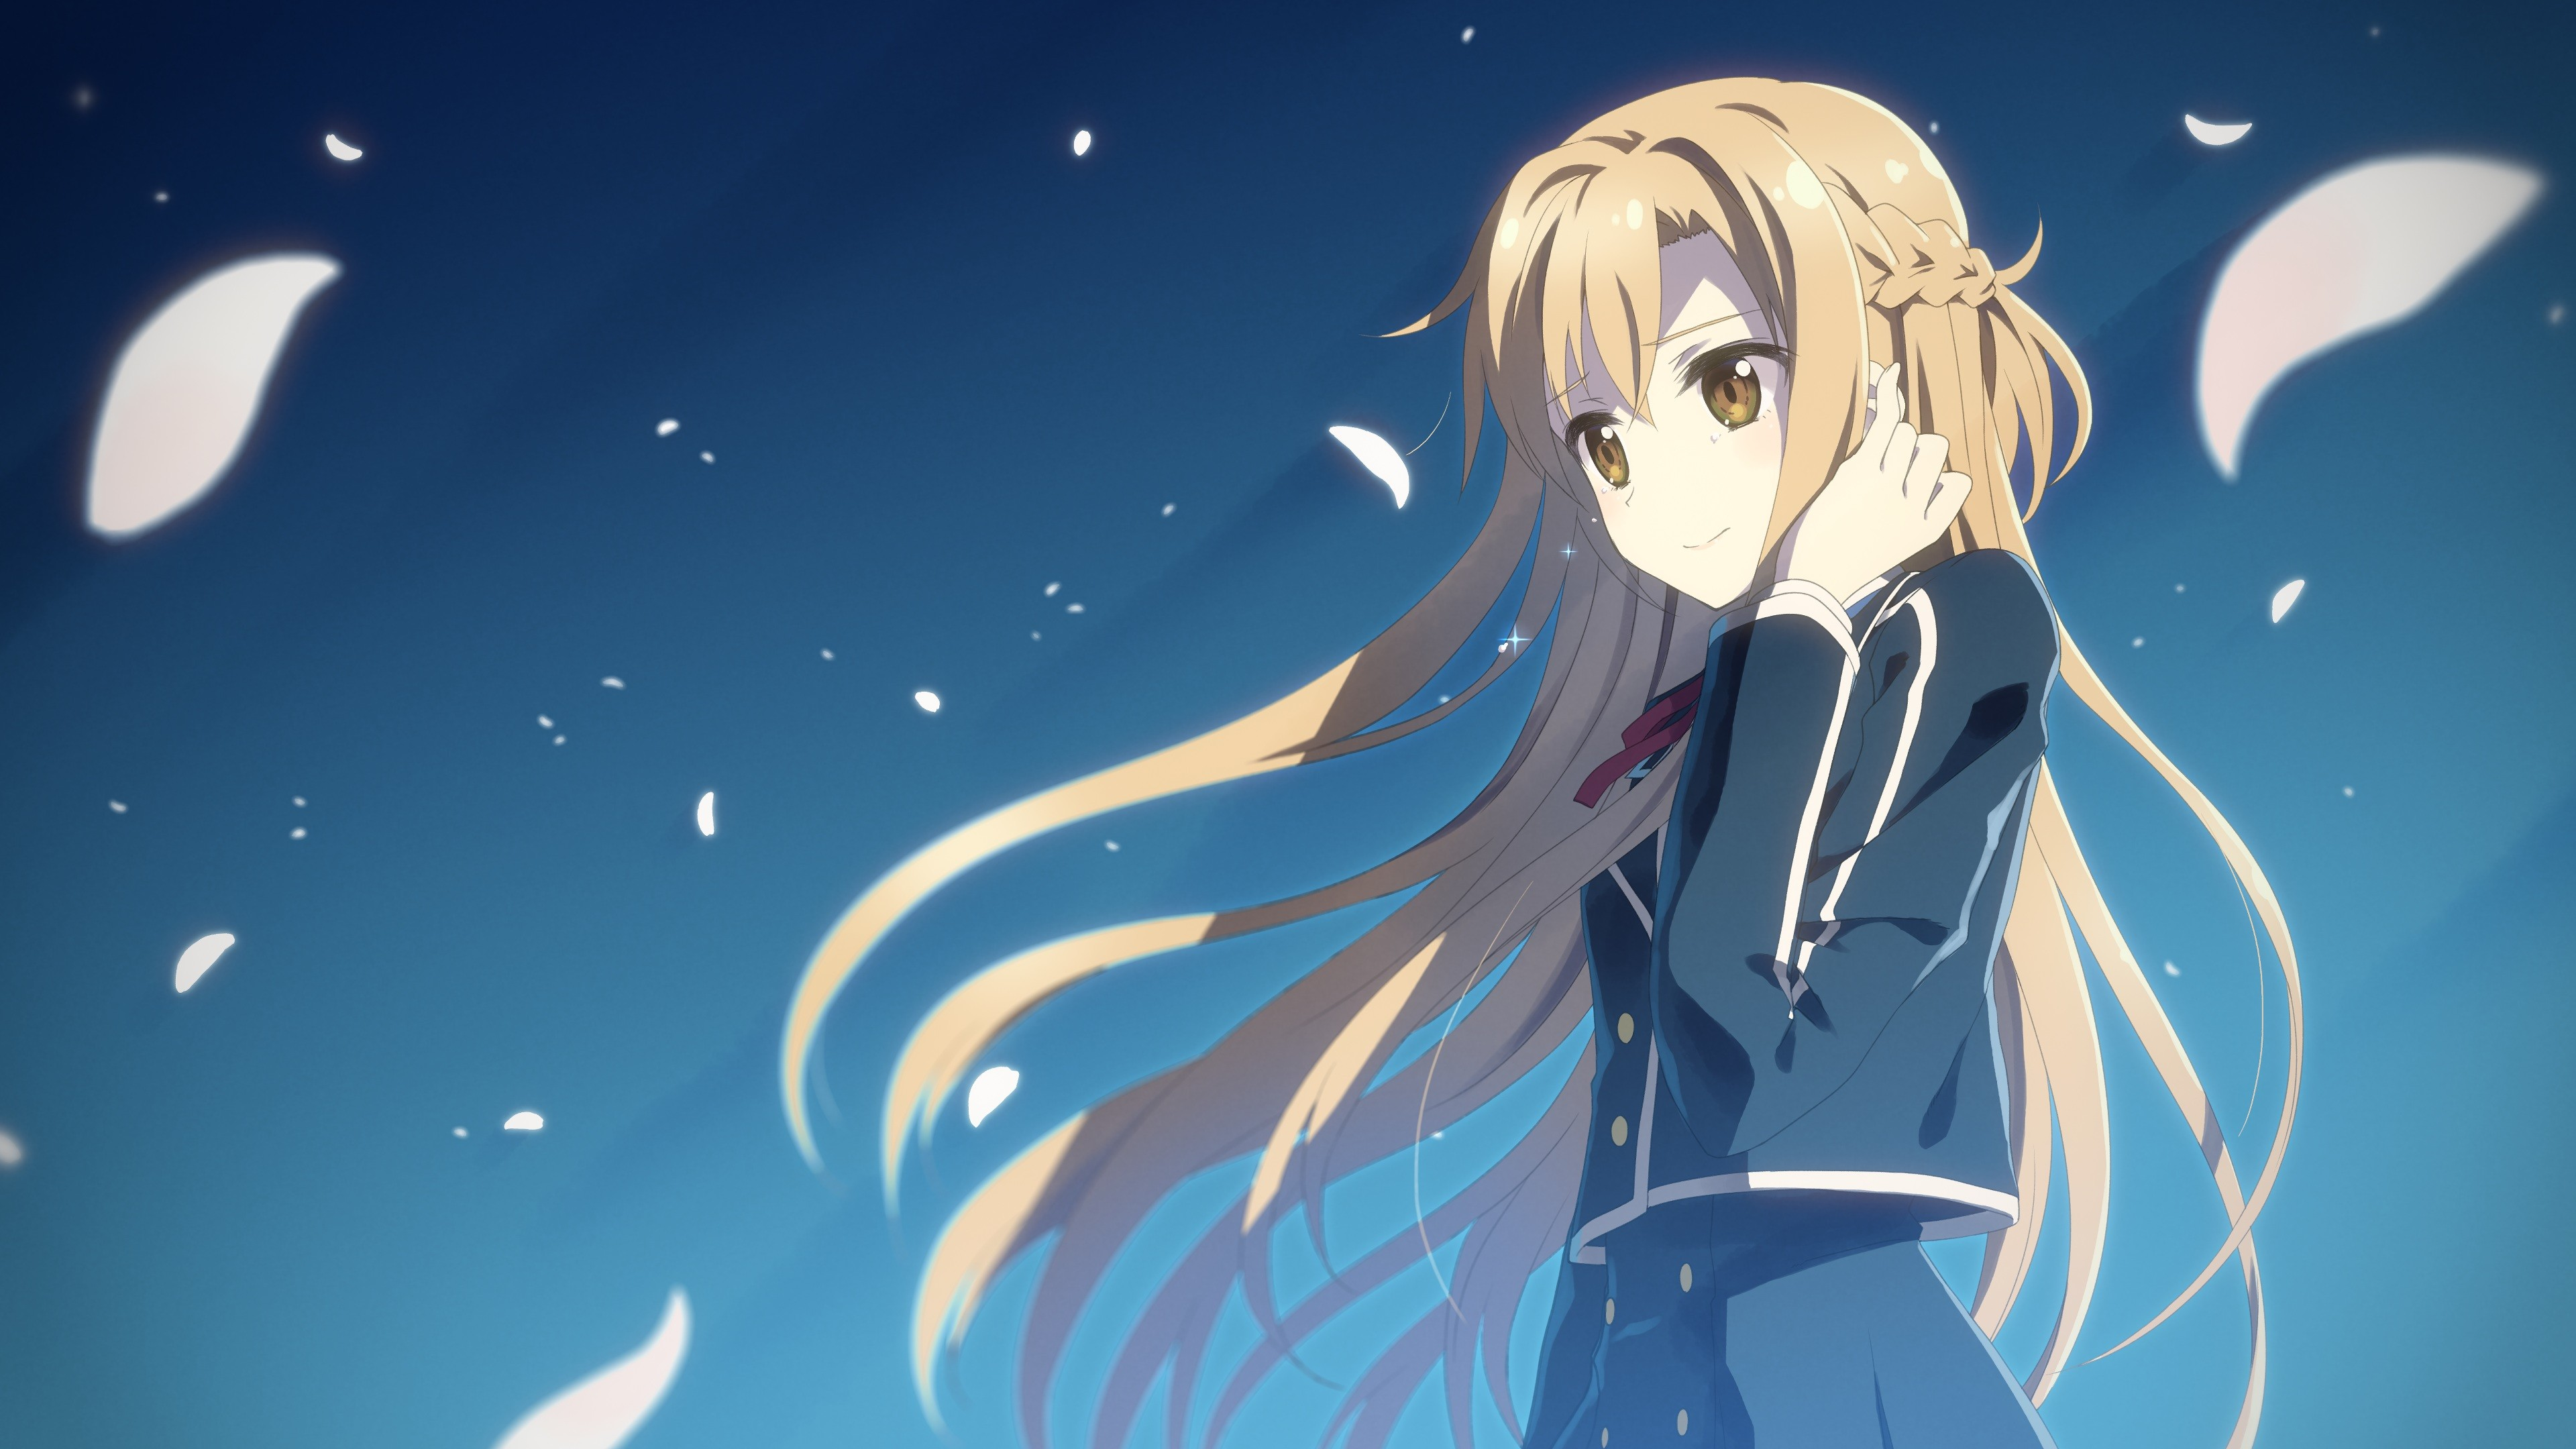 Anime Asuna Yuuki Sword Art Online HD Wallpaper